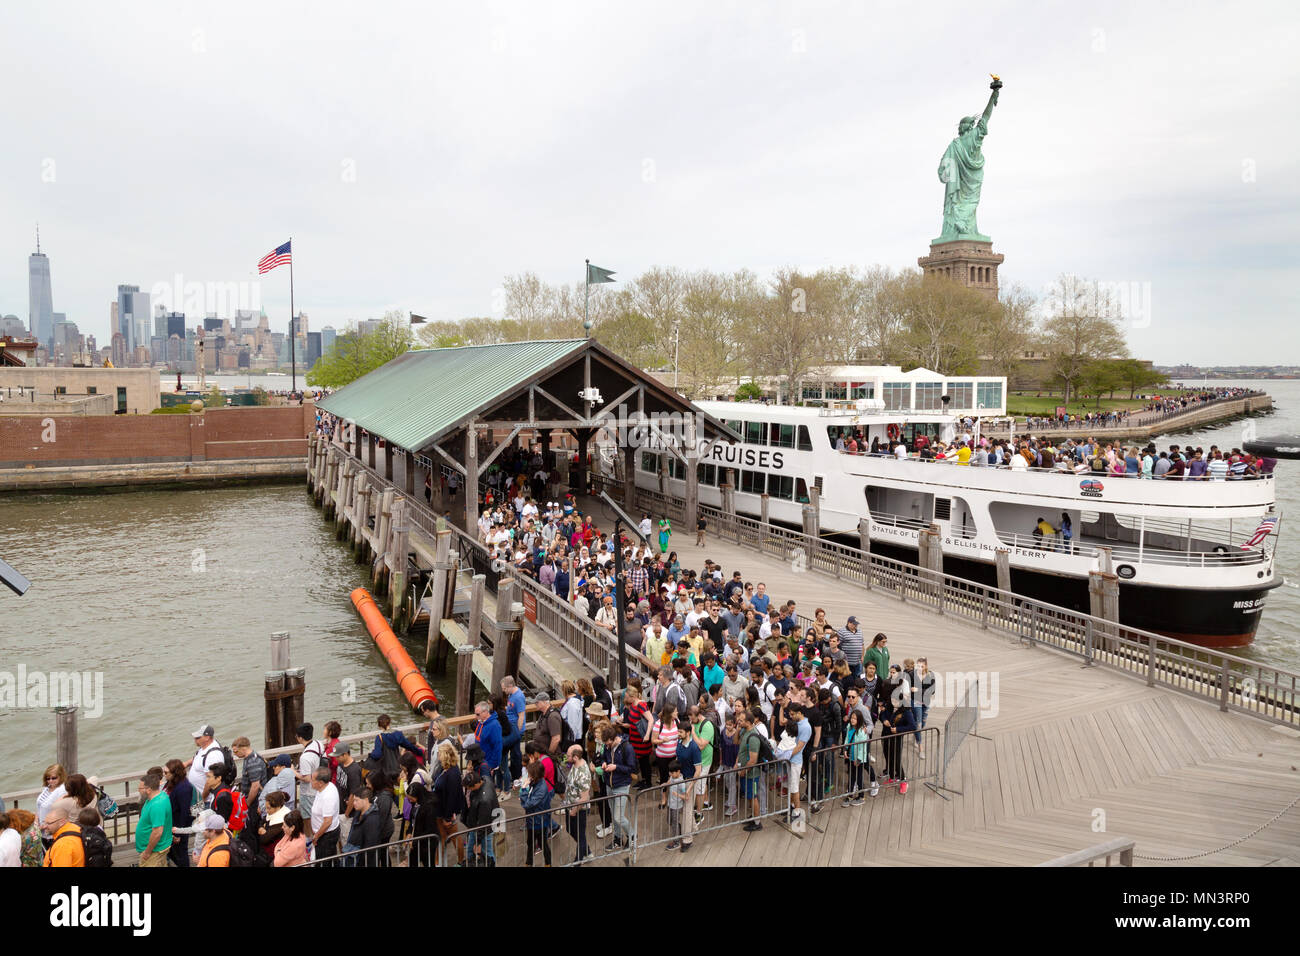 Tourists boarding a cruise boat at the dock on Liberty Island, with the Statue of Liberty, Liberty Island, New York city, USA Stock Photo